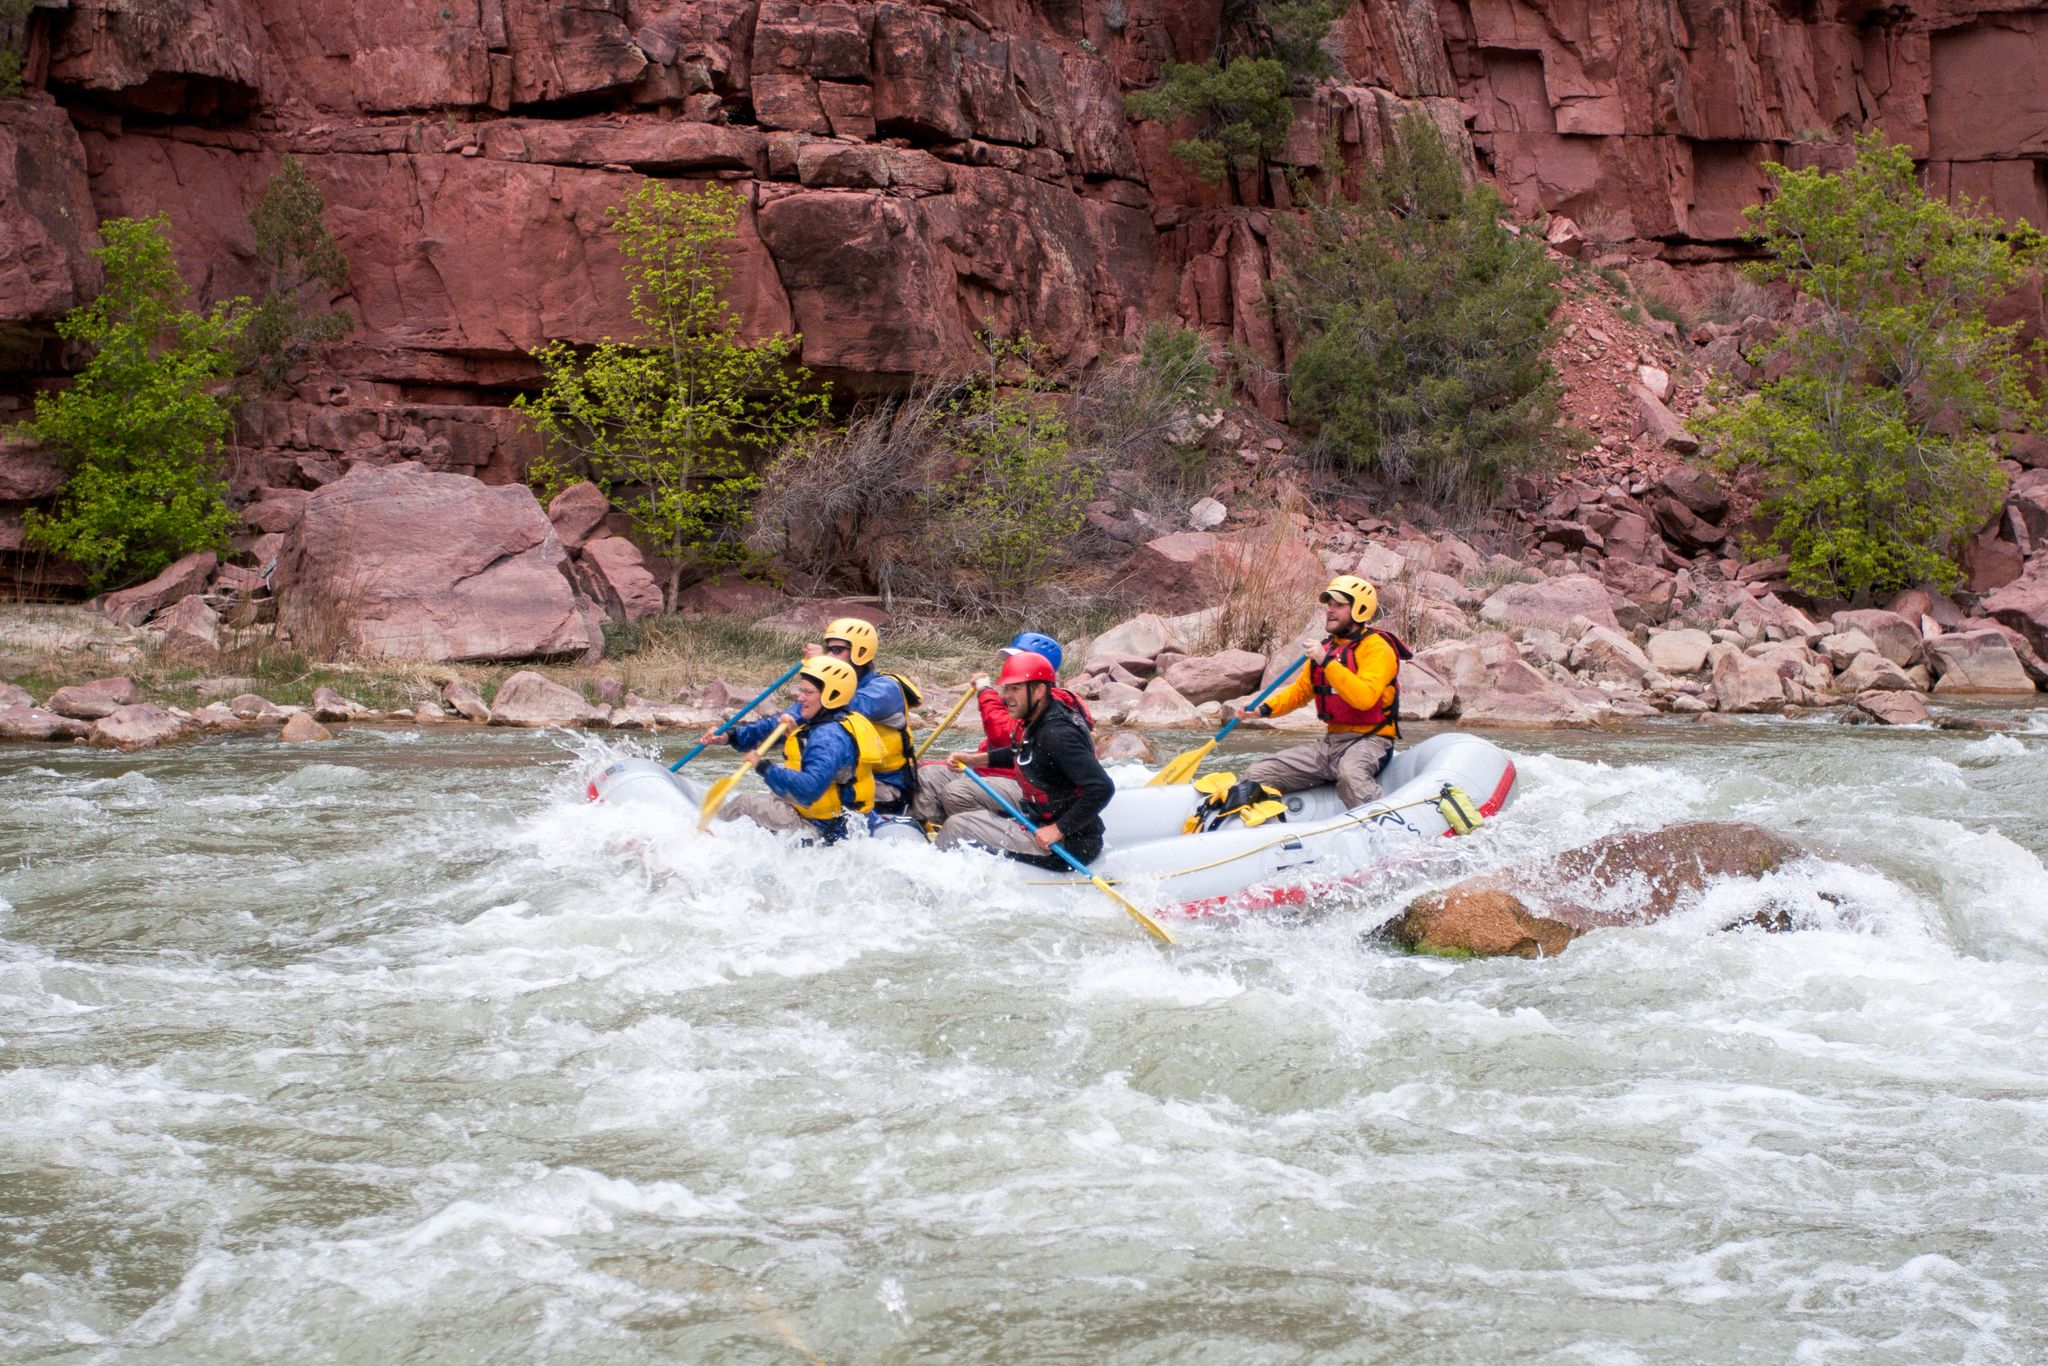 Summer Program - Whitewater Rafting | NOLS Summer Semester in the Rockies